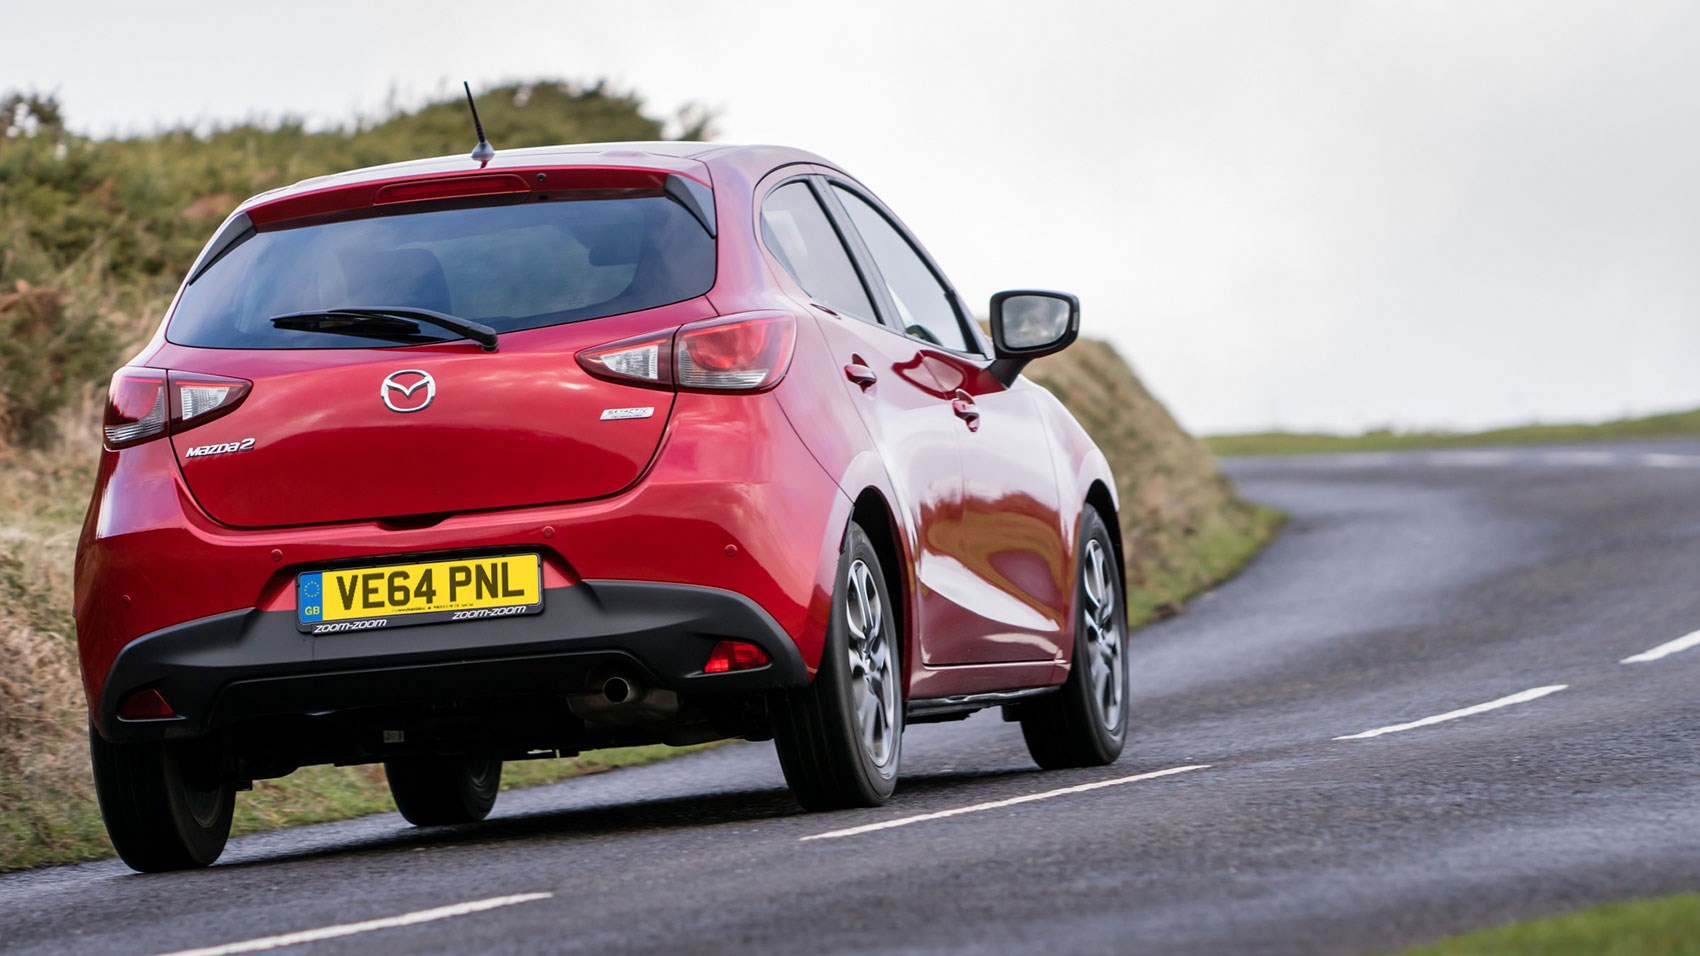 The New 2015 Mazda 2 On Test We Tested The Mazda 2 In 1.5 Petrol Guise ...